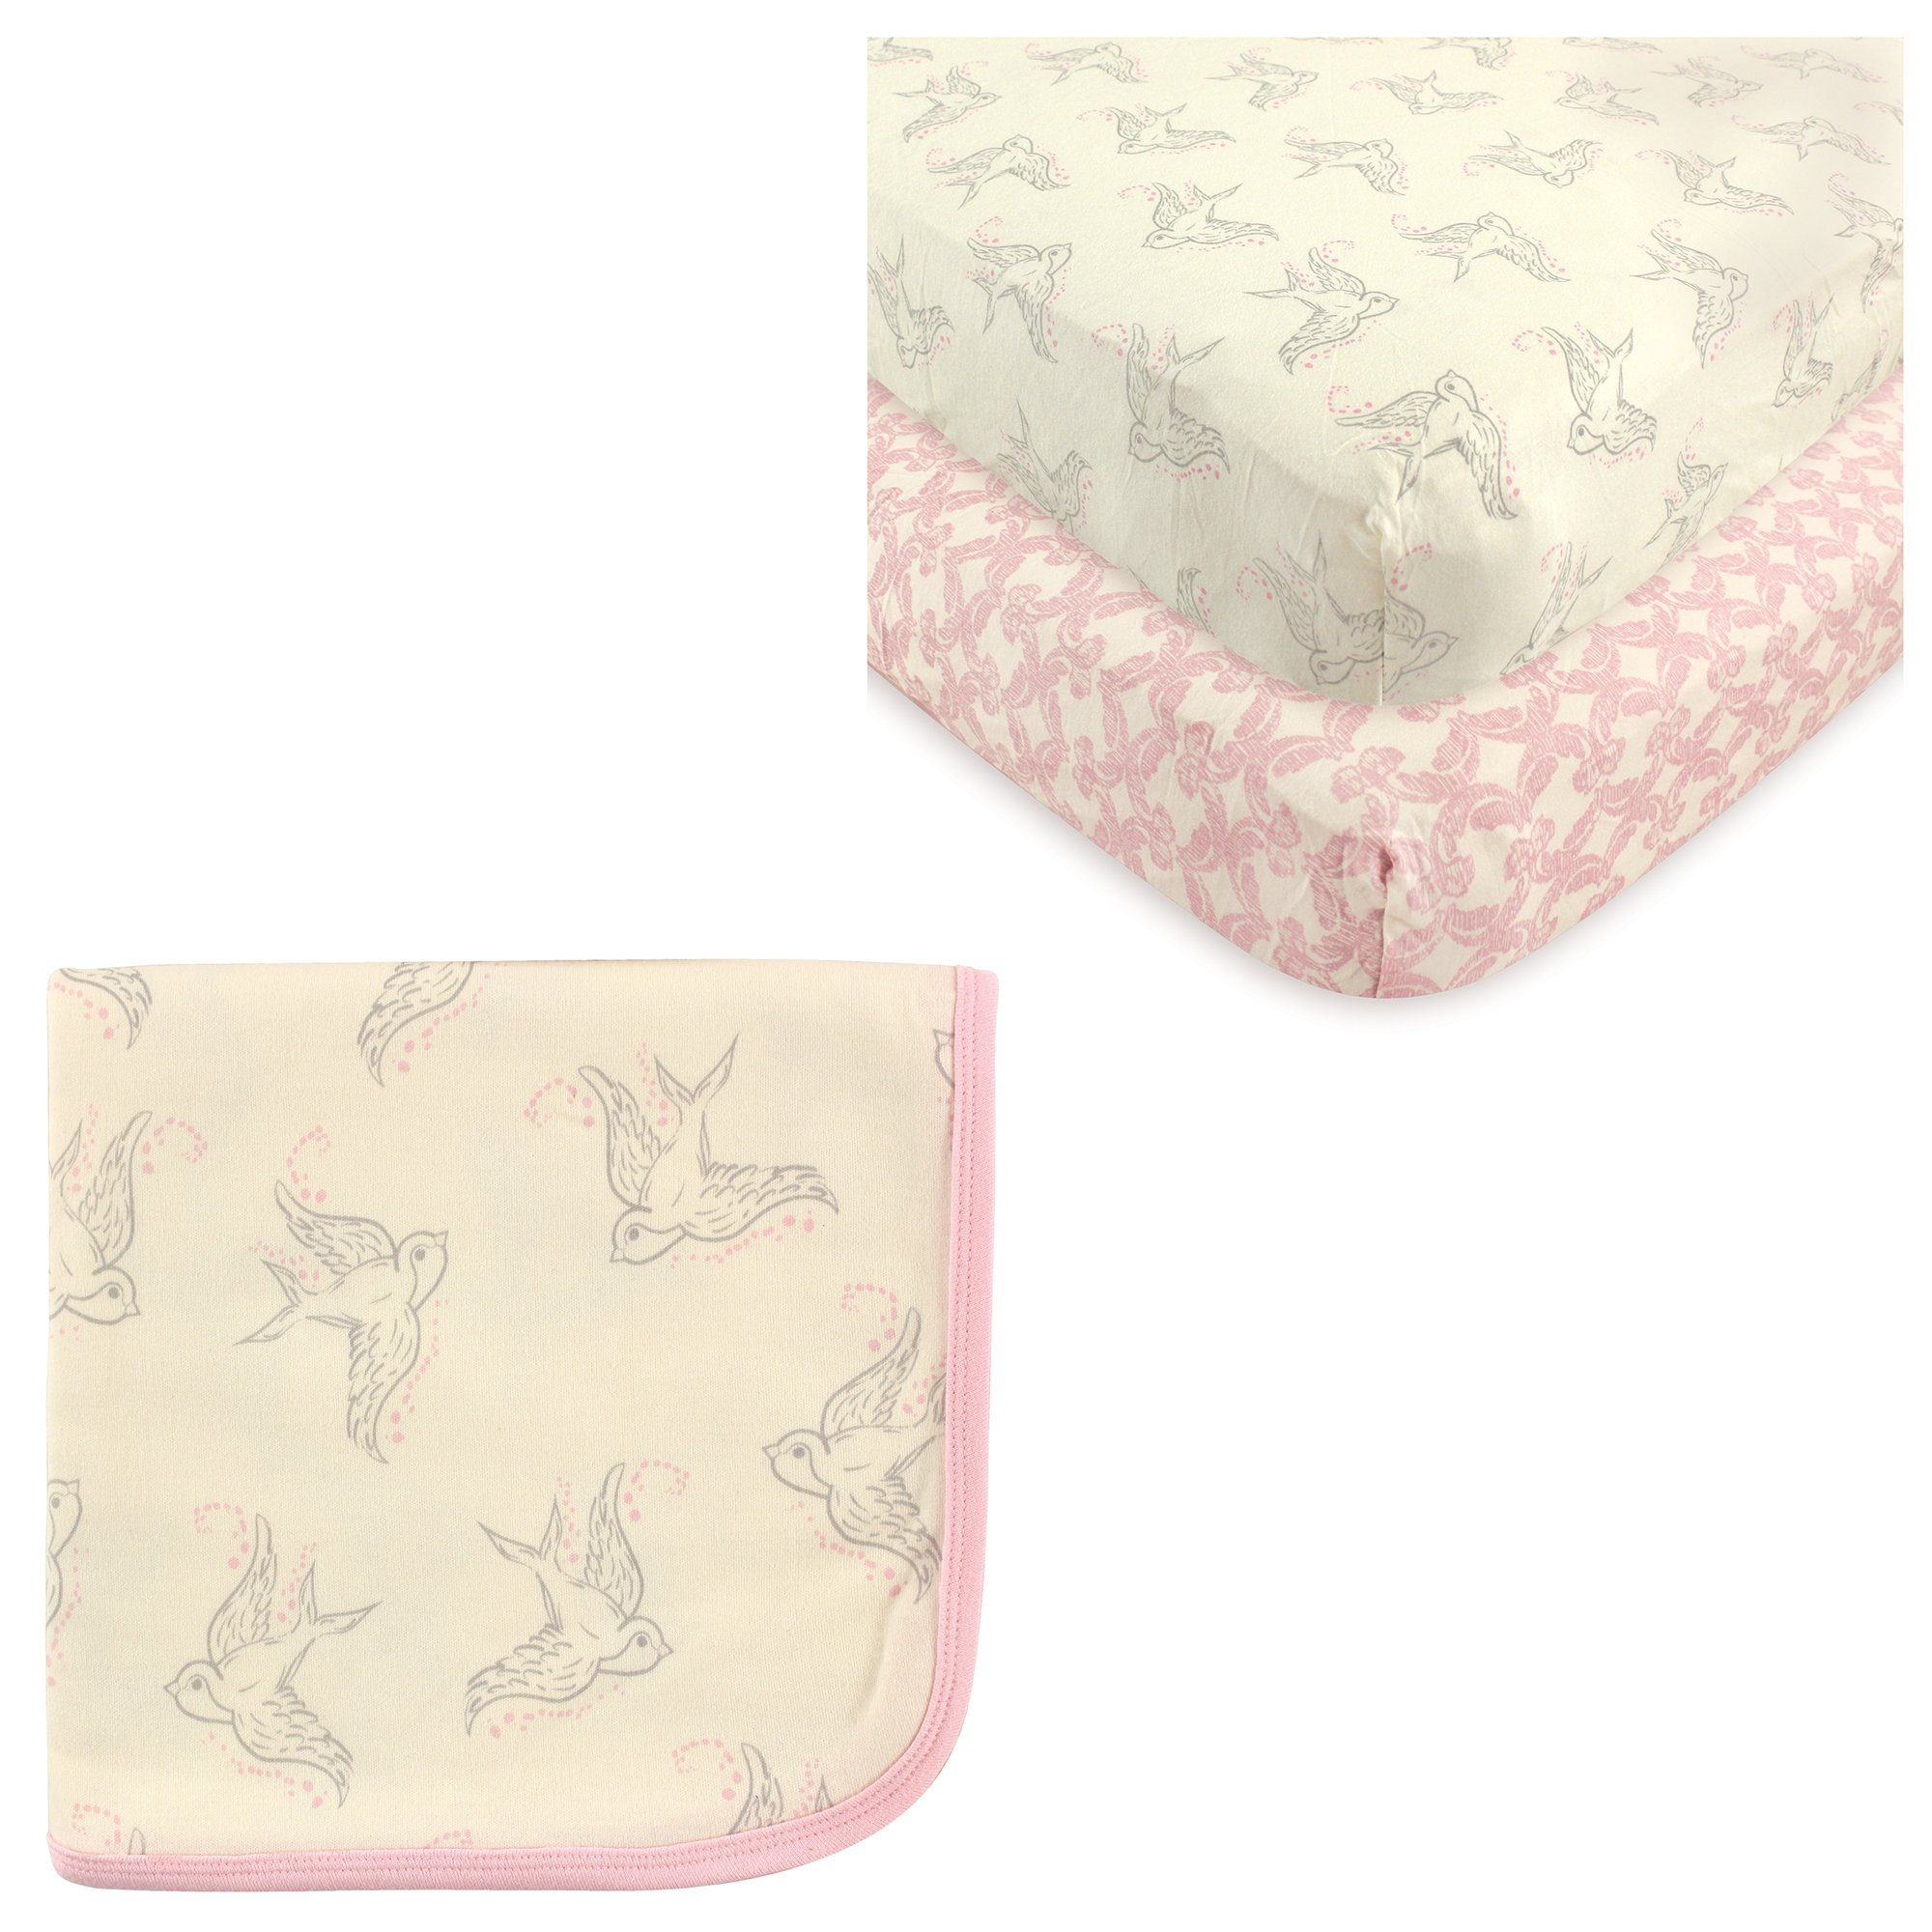 Organic Cotton Fitted Crib Sheet 2-Pack & Cotton Swaddle Blanket